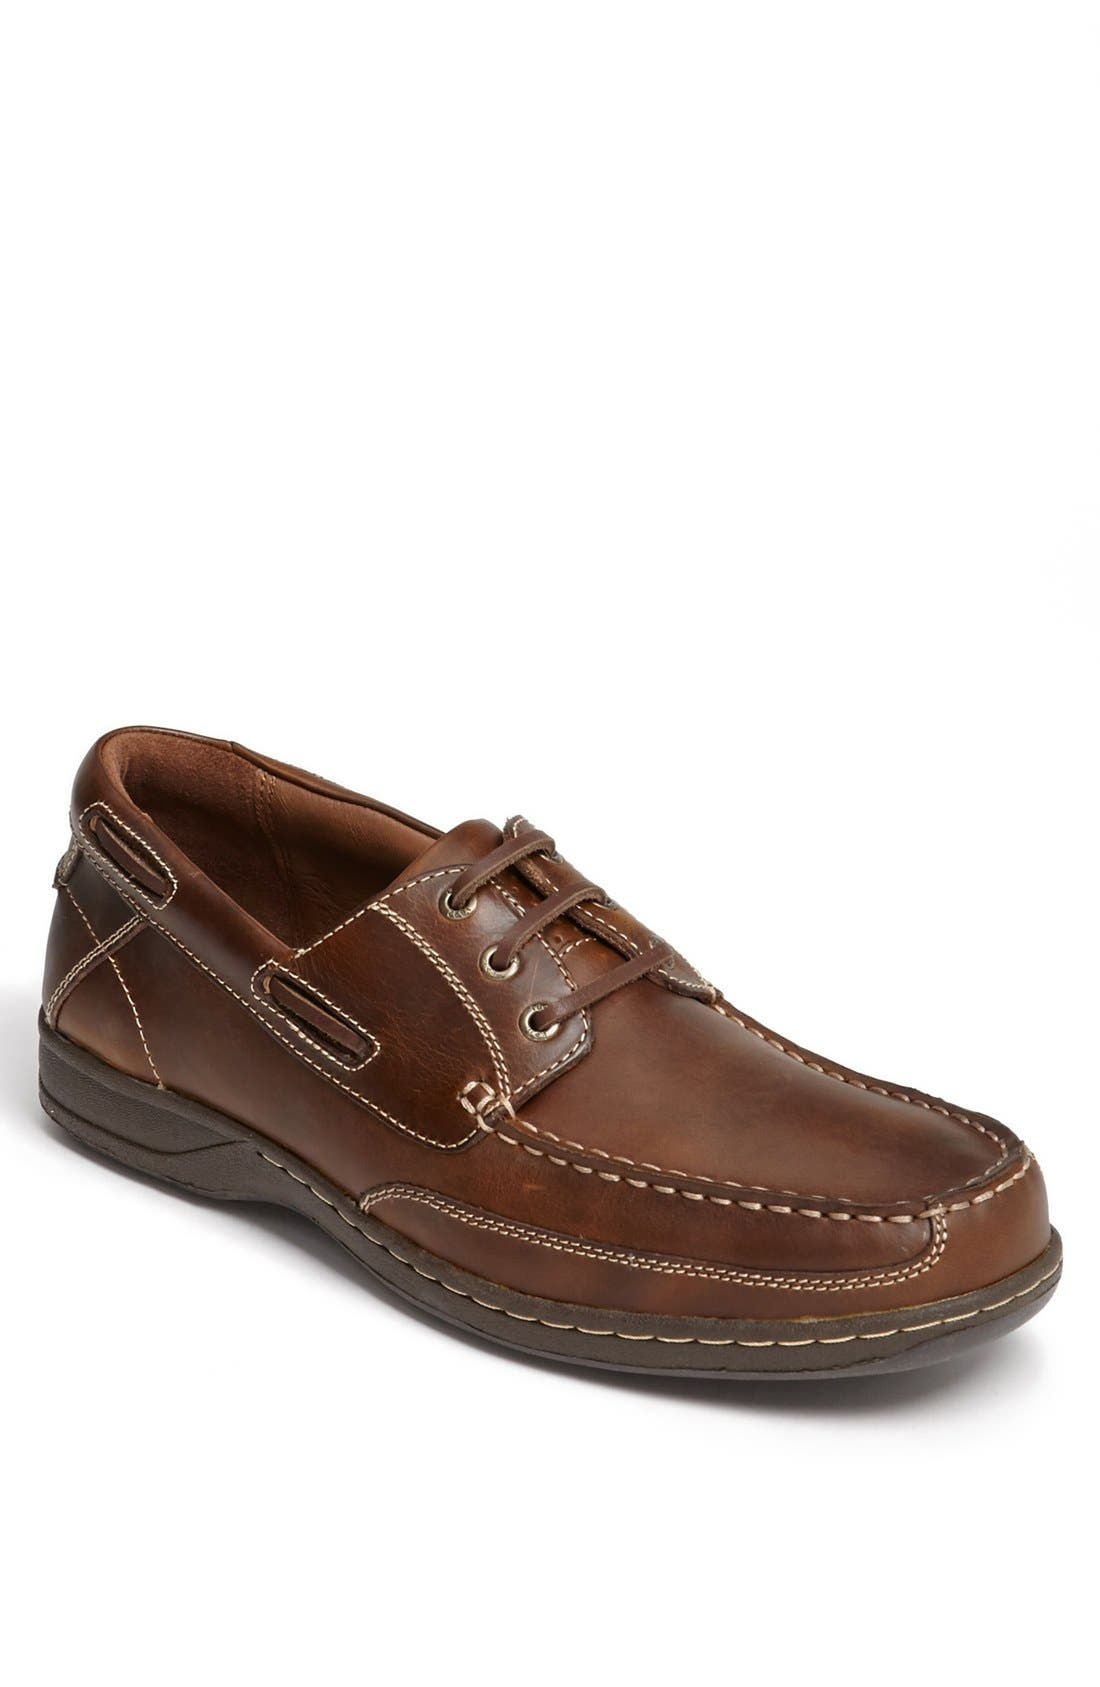 Alternate Image 1 Selected - Florsheim 'Lakeside LX' Boat Shoe